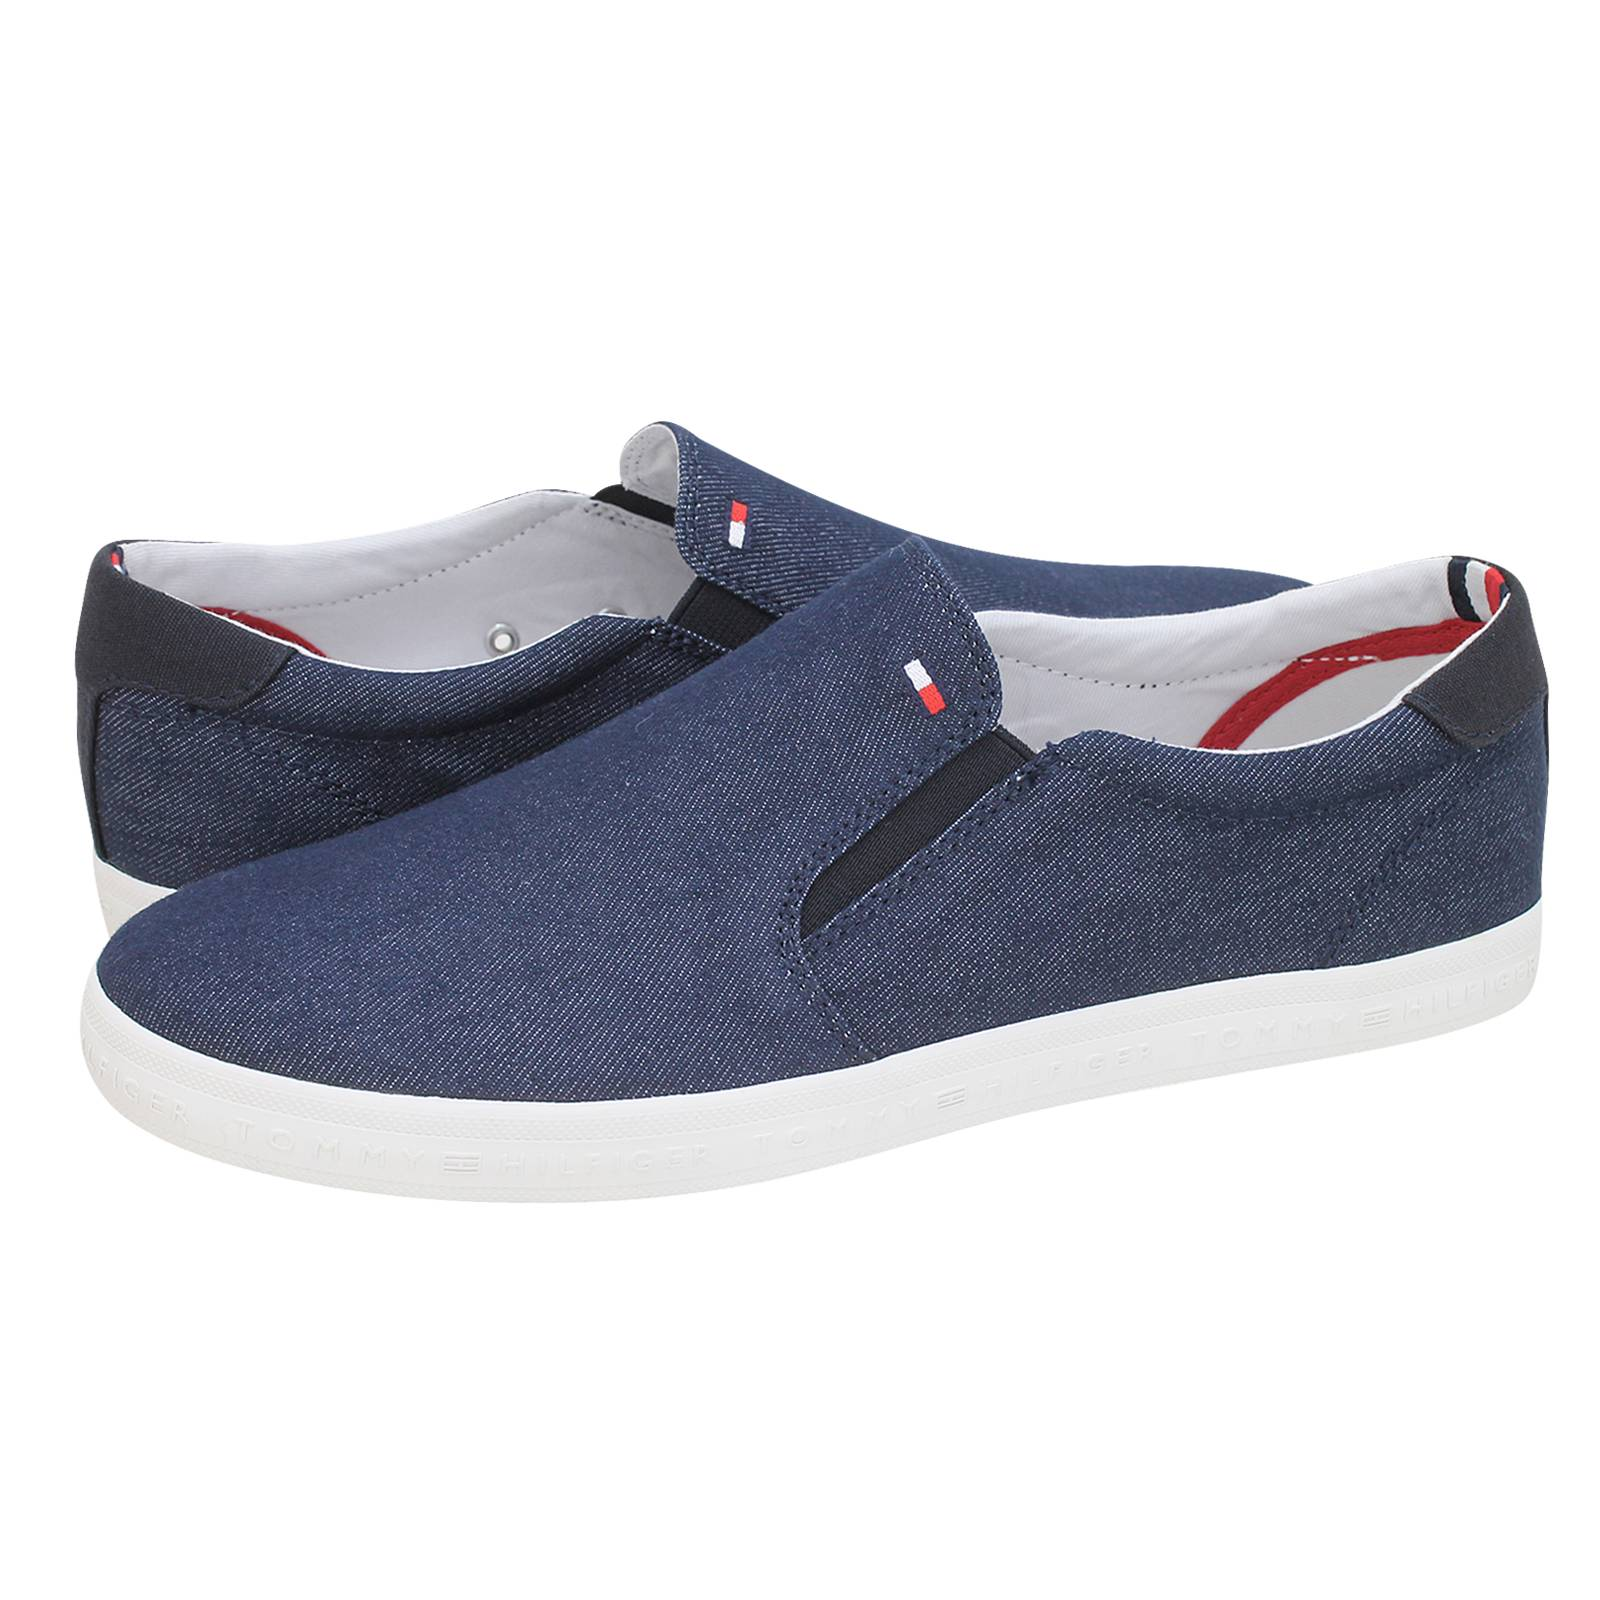 e64f4f6e1ed Essential Slip On Sneaker - Ανδρικά παπούτσια casual Tommy Hilfiger ...